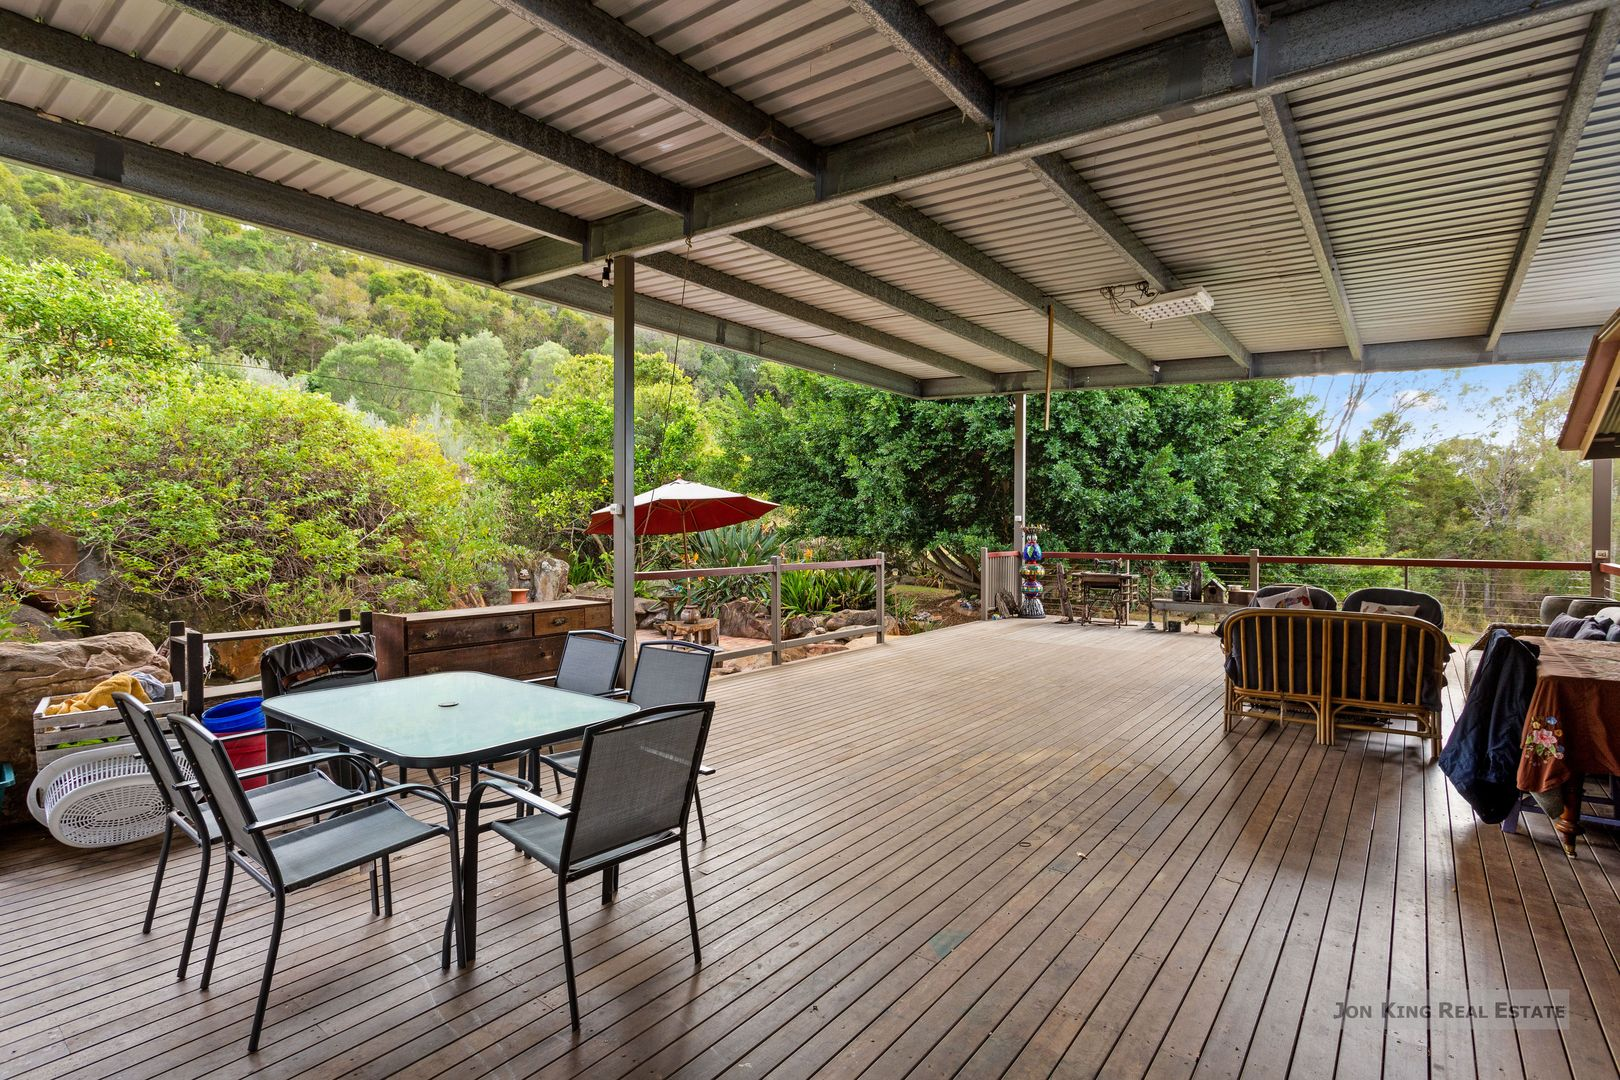 300 Mount Alford Rd, Frenches Creek QLD 4310, Image 1